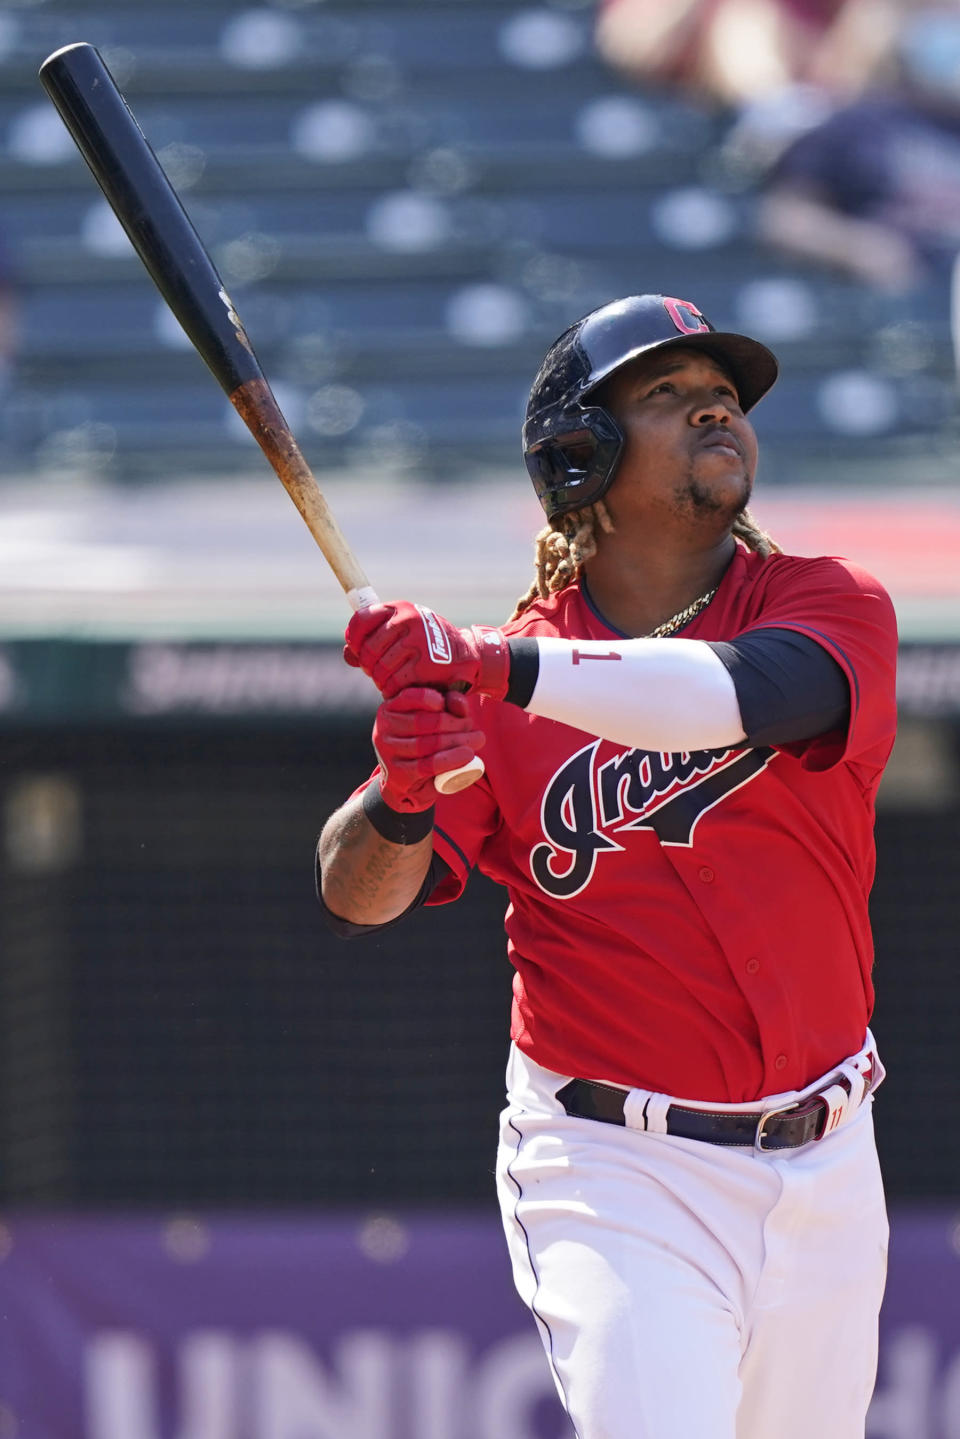 Cleveland Indians' Jose Ramirez watches his ball after hitting a two-run home run in the sixth inning of a baseball game against the Kansas City Royals, Wednesday, April 7, 2021, in Cleveland. (AP Photo/Tony Dejak)